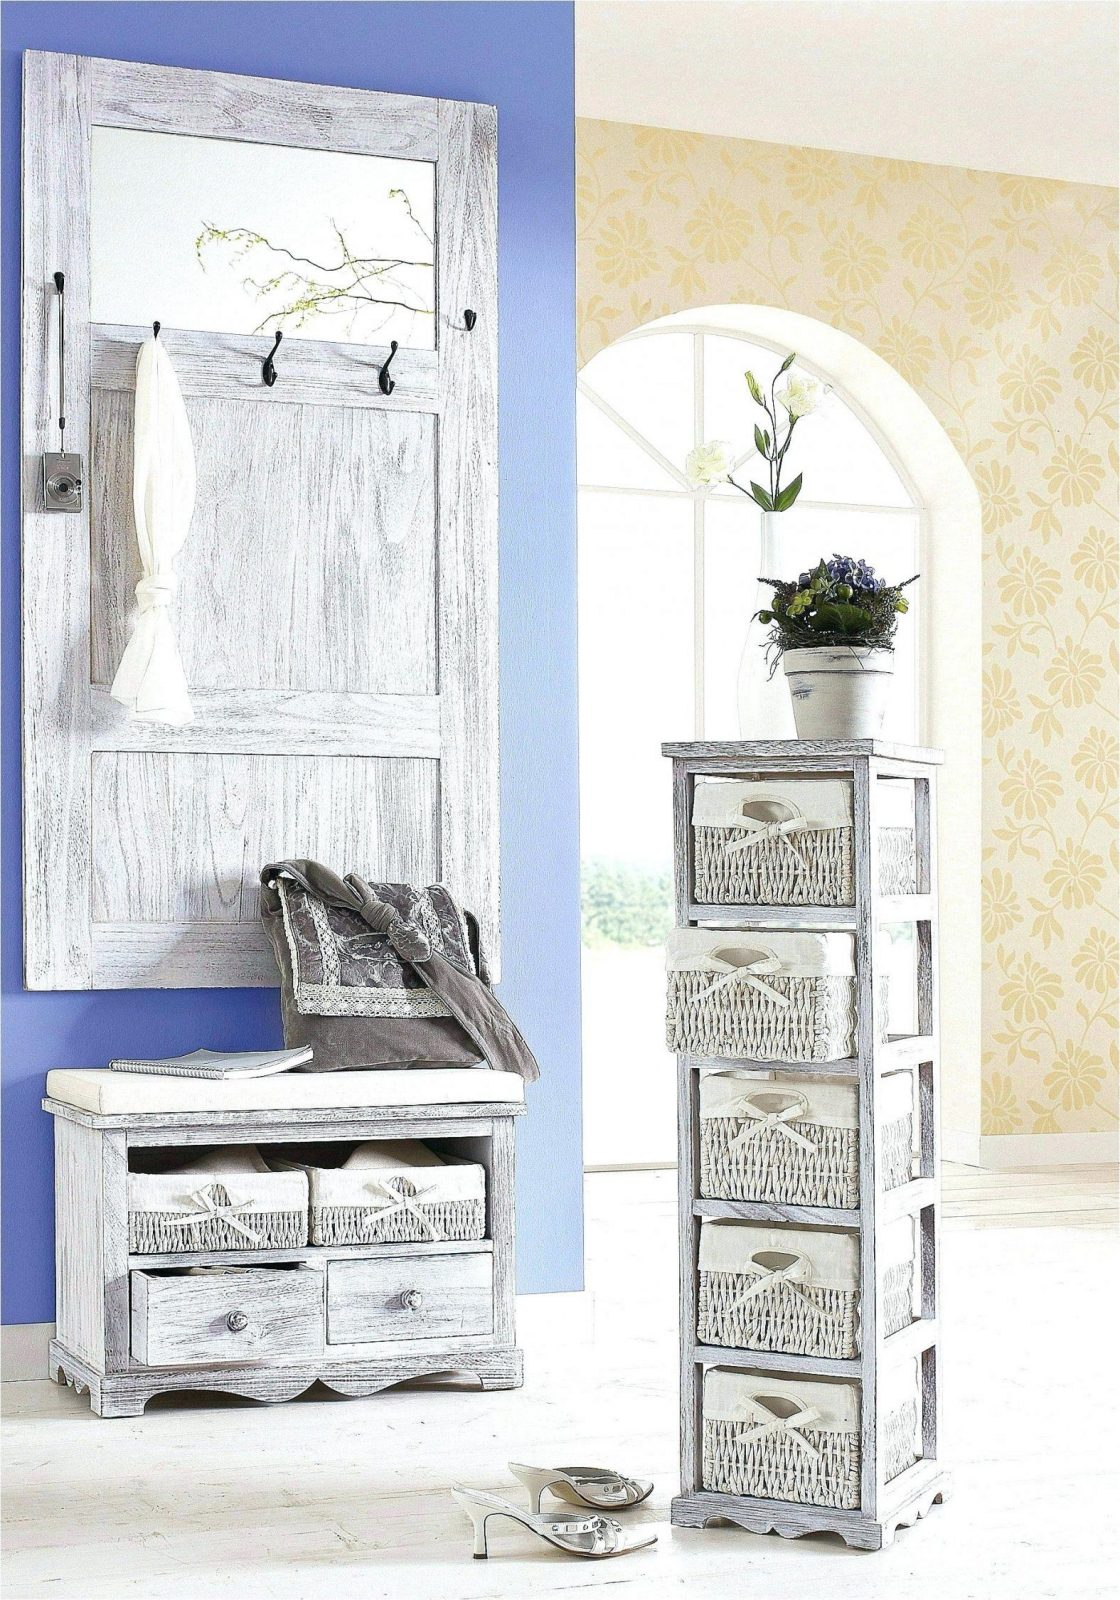 Laminat Shabby Chic | White Washed Wood Floor Meets Home With ...